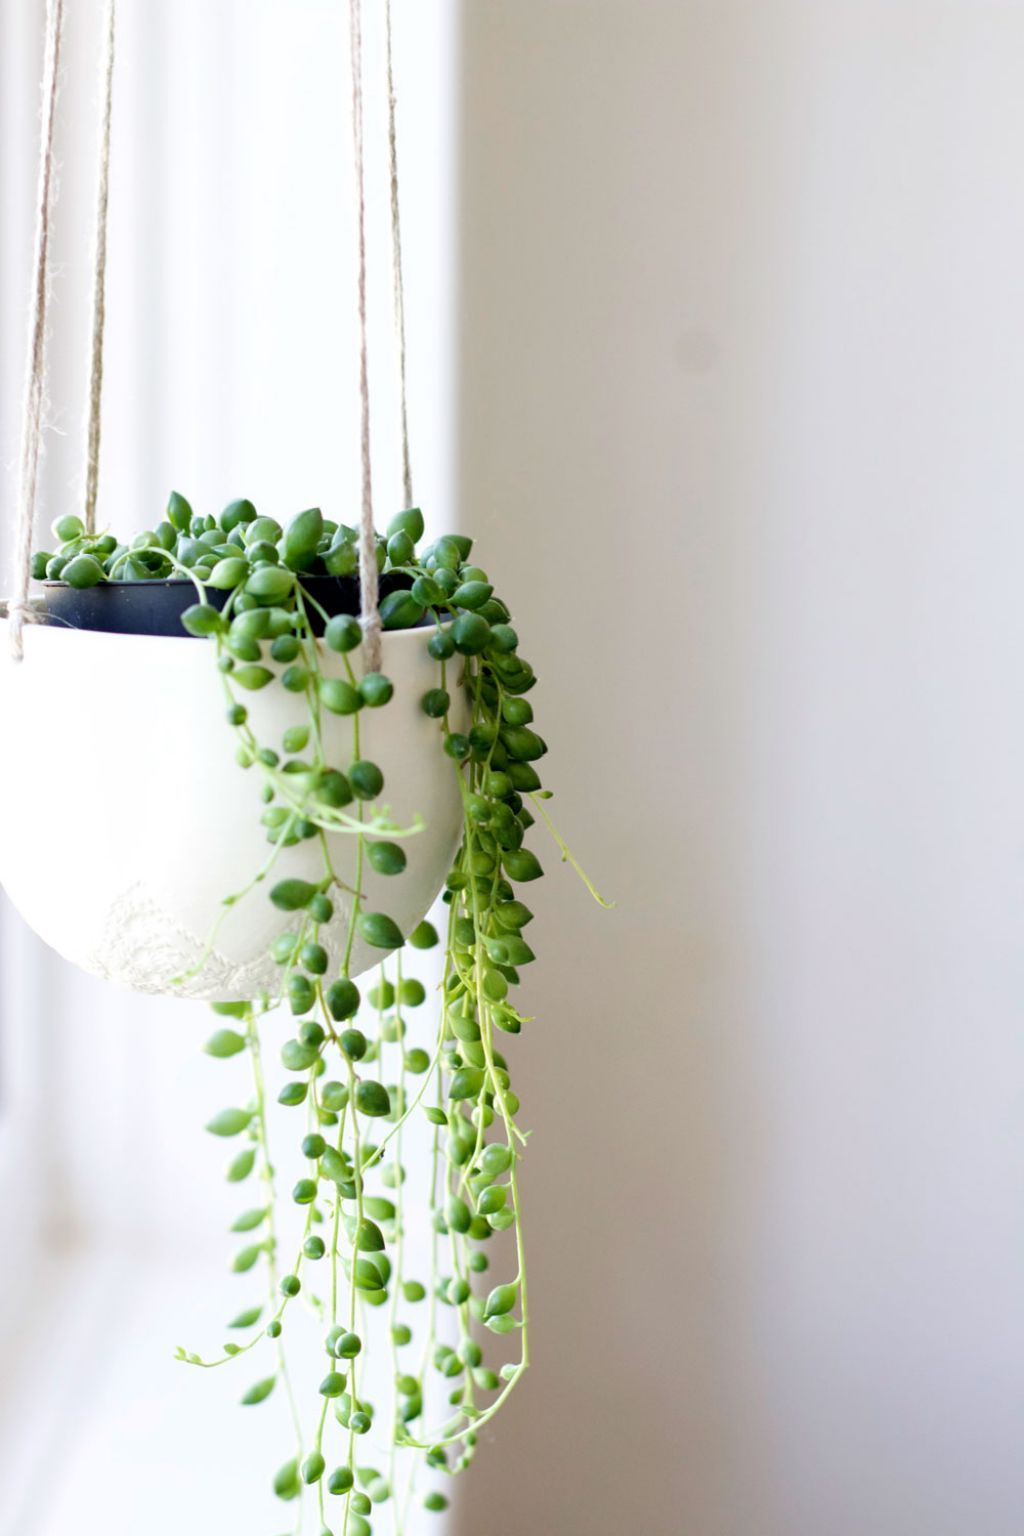 String of Pearls - This eye-catching succulent is a fun and easy to take care of. String of Pearls requires very little hands-on care and thrives well in average indoor temperatures.